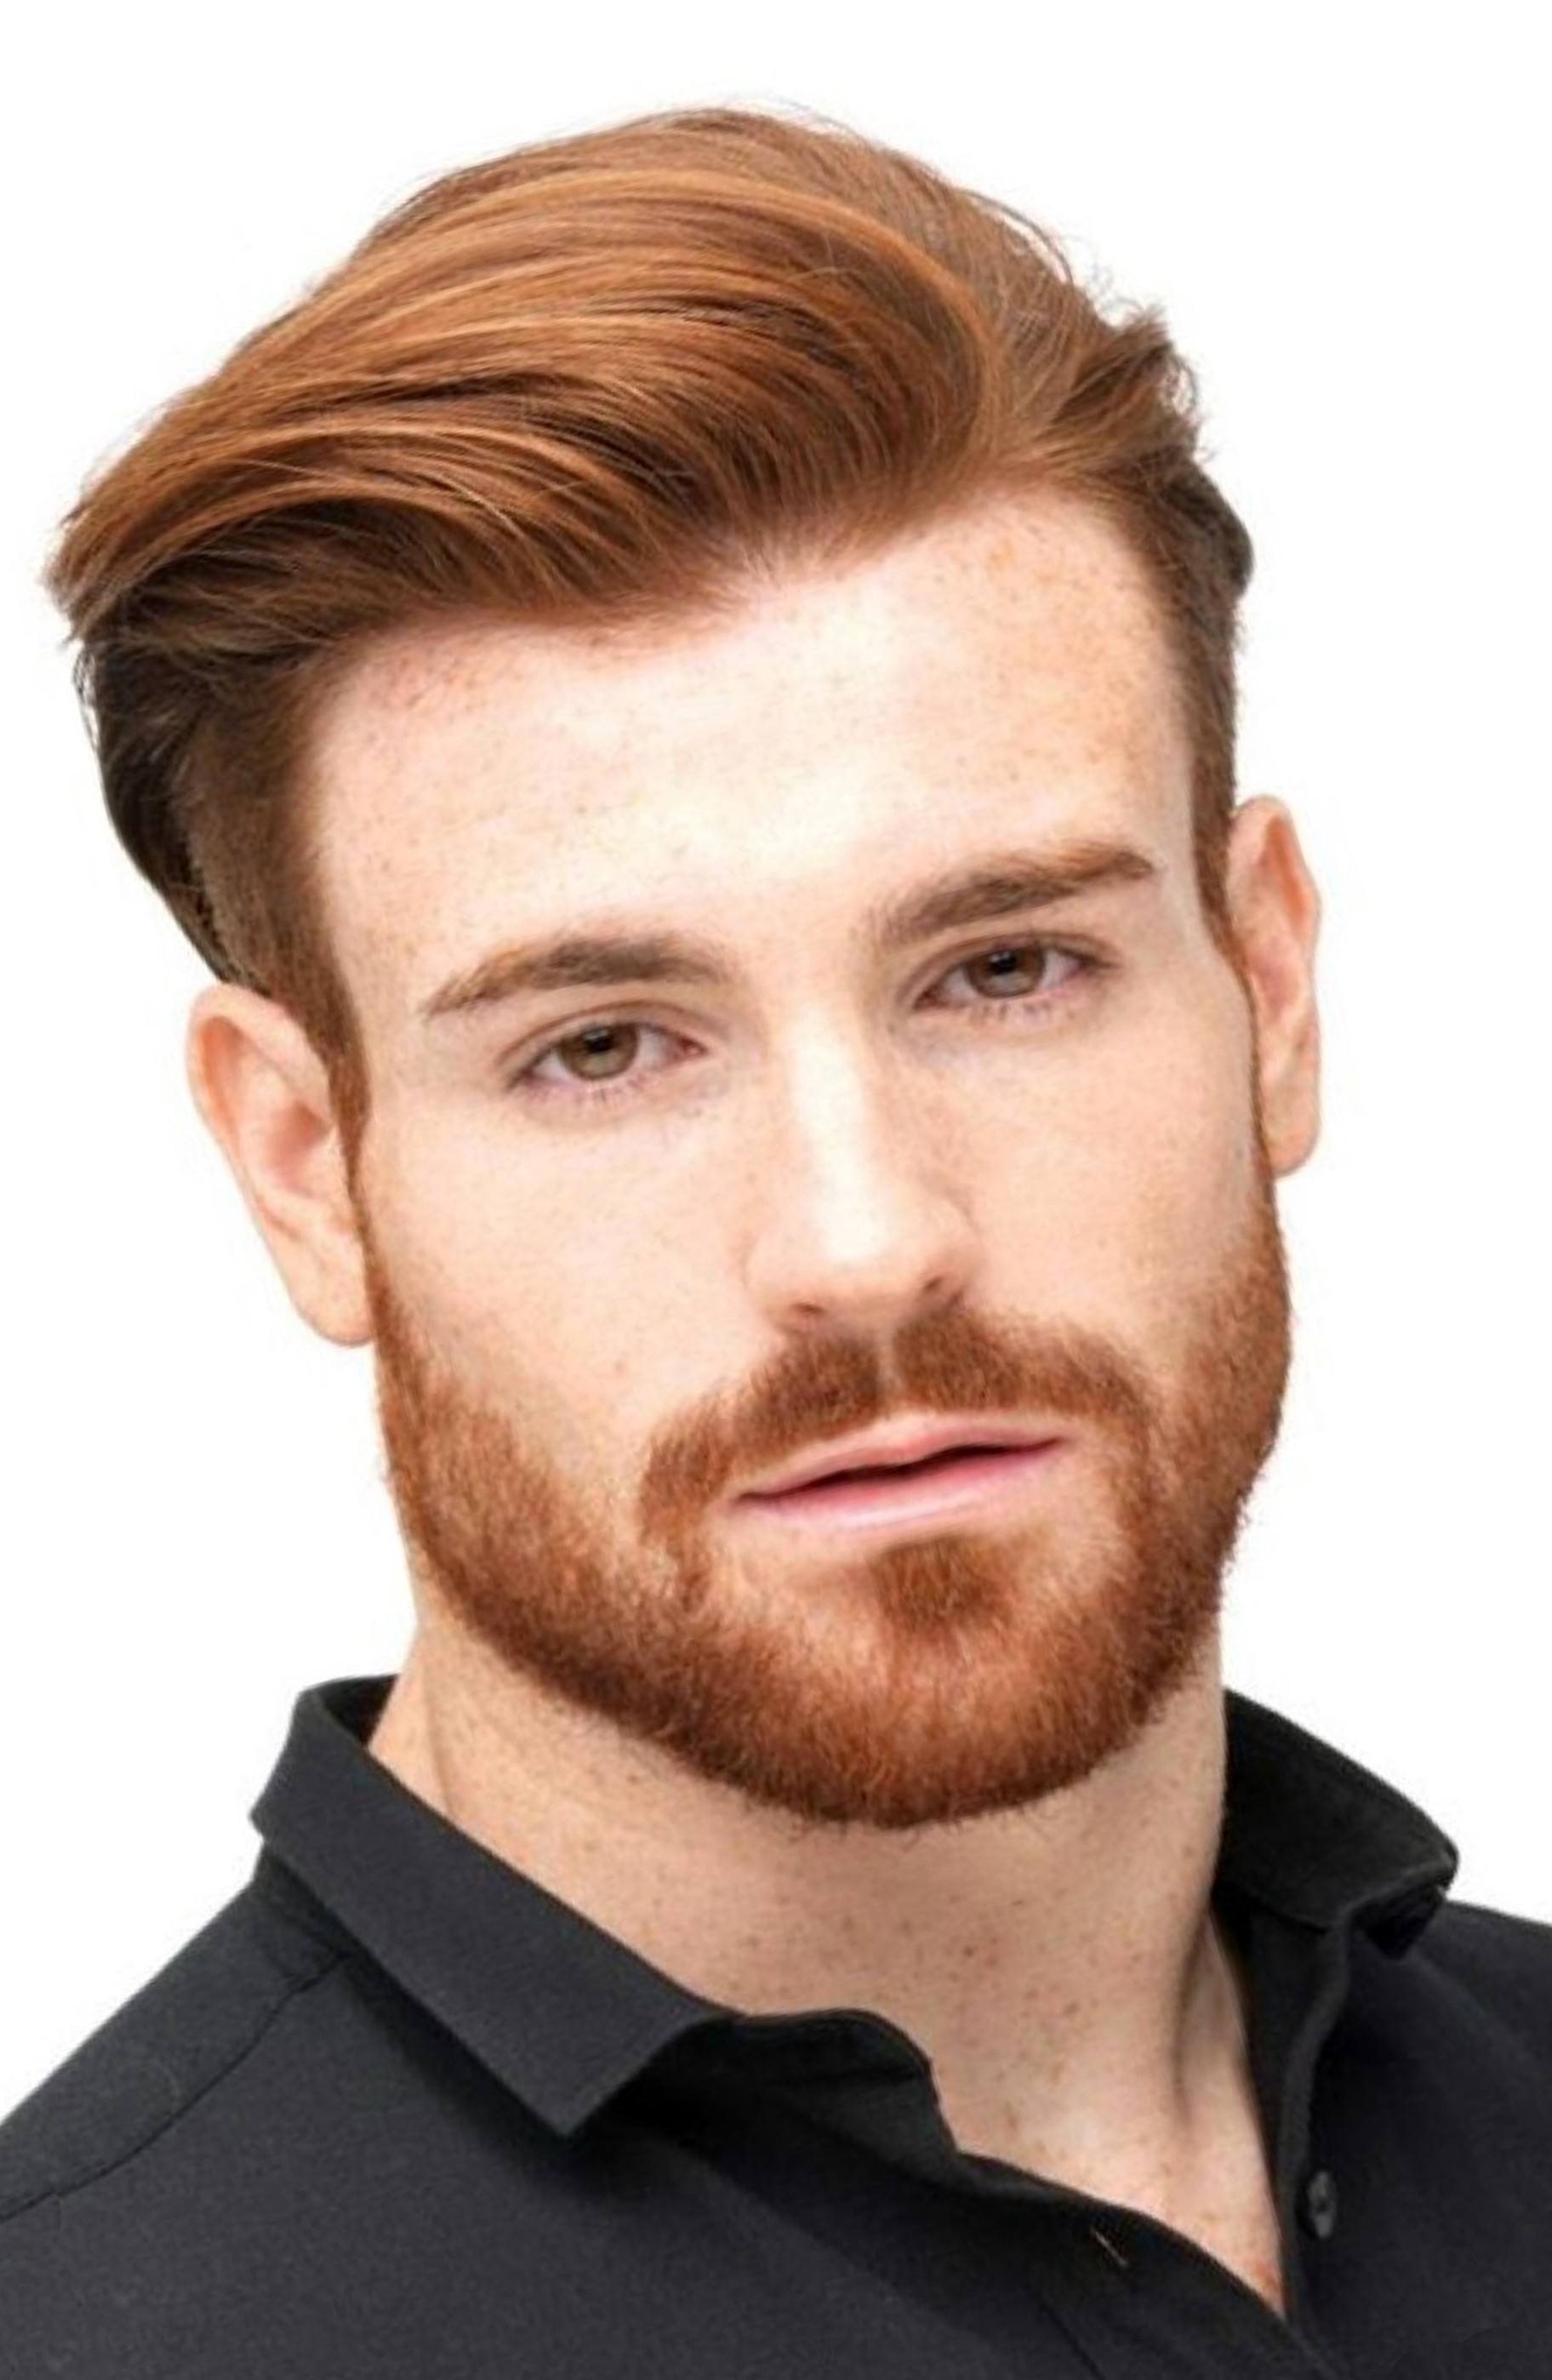 A short ginger beard for modern men.